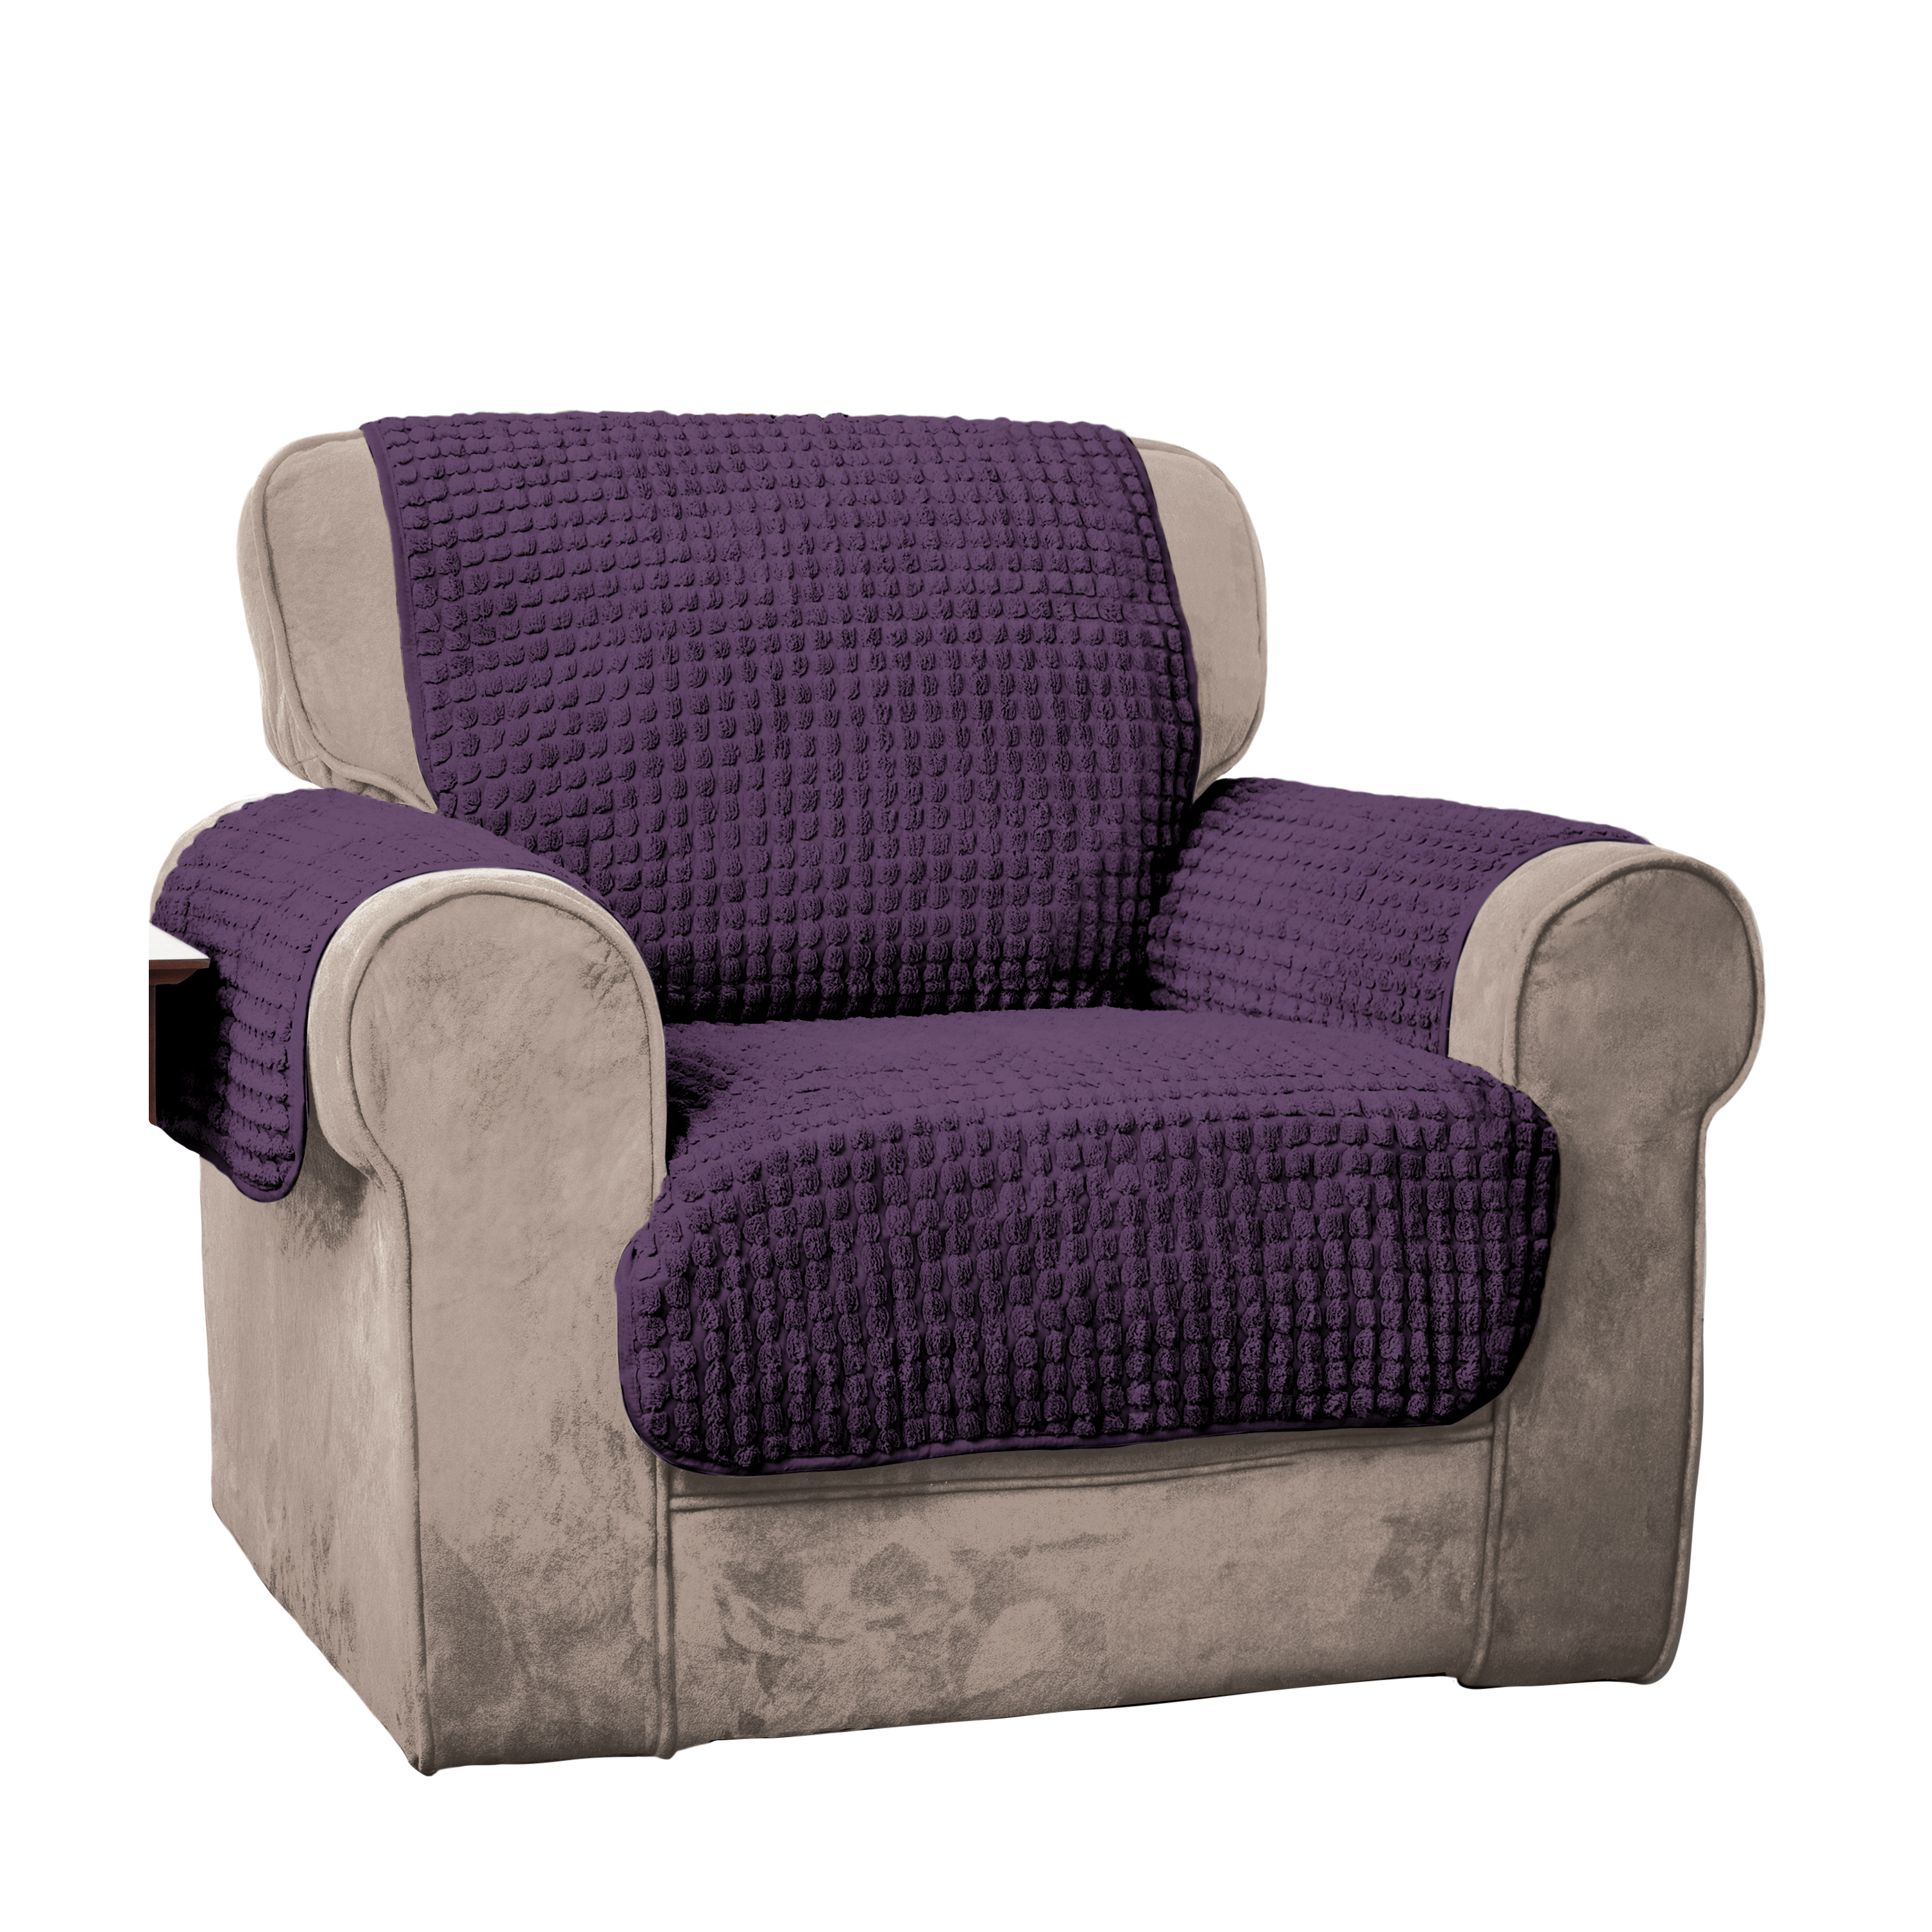 Innovative Textile Solutions Puff Chair Furniture Cover Slipcover